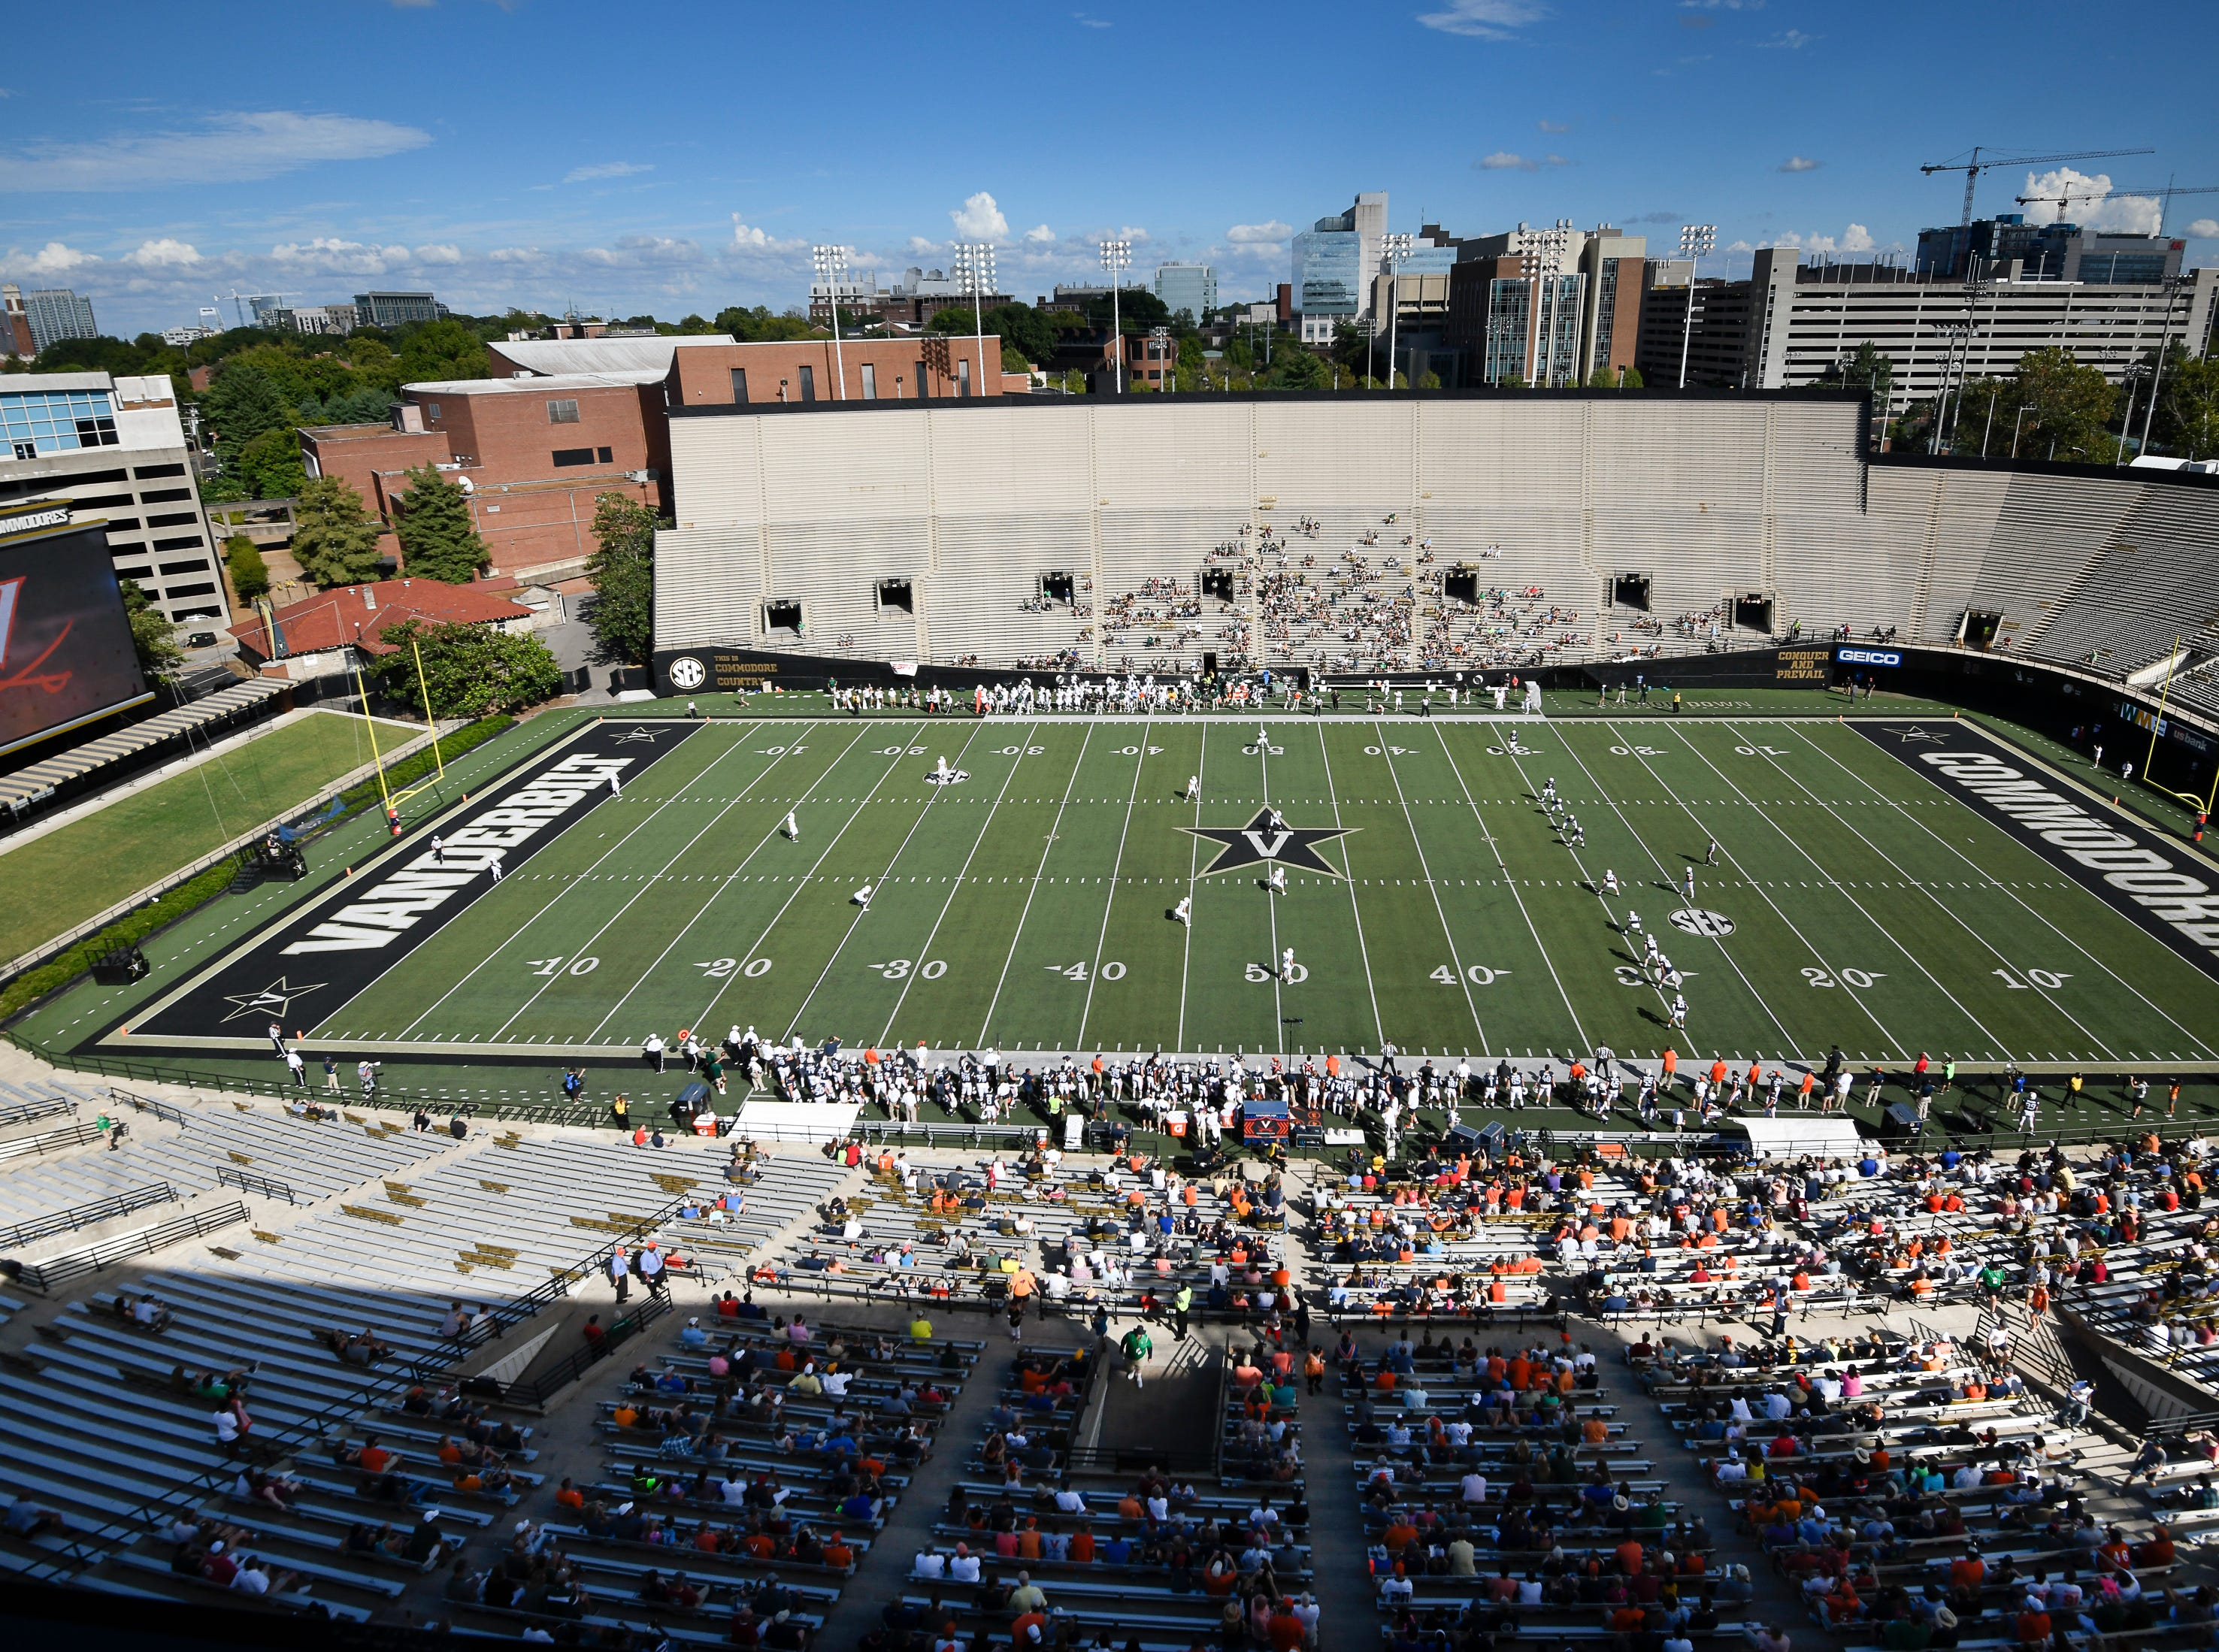 Virginia and Ohio fans file into Vanderbilt Stadium to watch their teams play Saturday, Sept. 15, 2018, in Nashville, Tenn. Their football game was moved from Virginia to Tennessee to avoid the effects of Hurricane Florence.